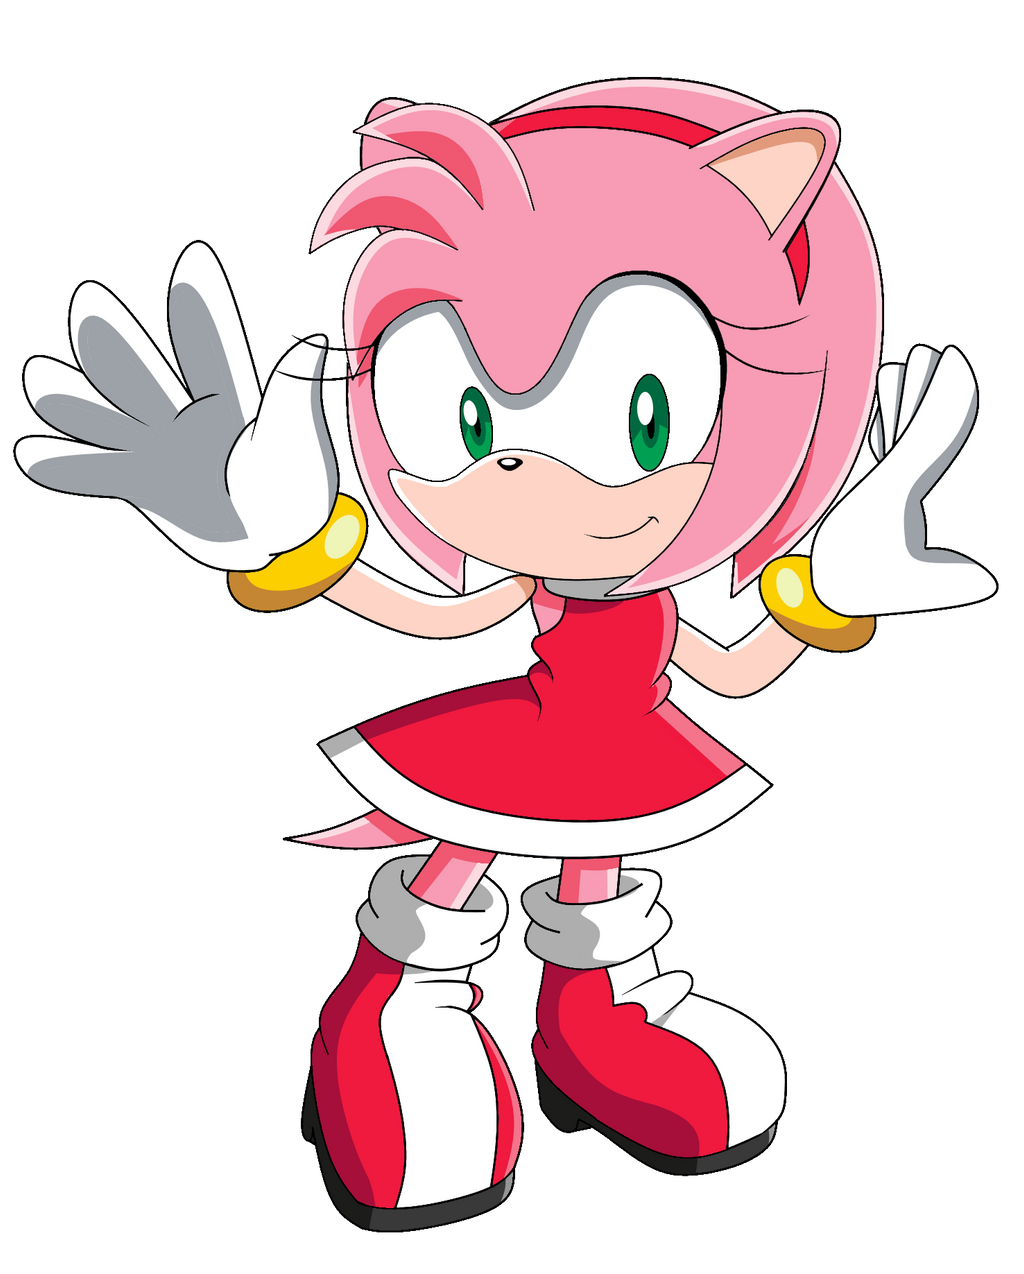 Amy rose by siient angei on deviantart - Amy rose sonic x ...